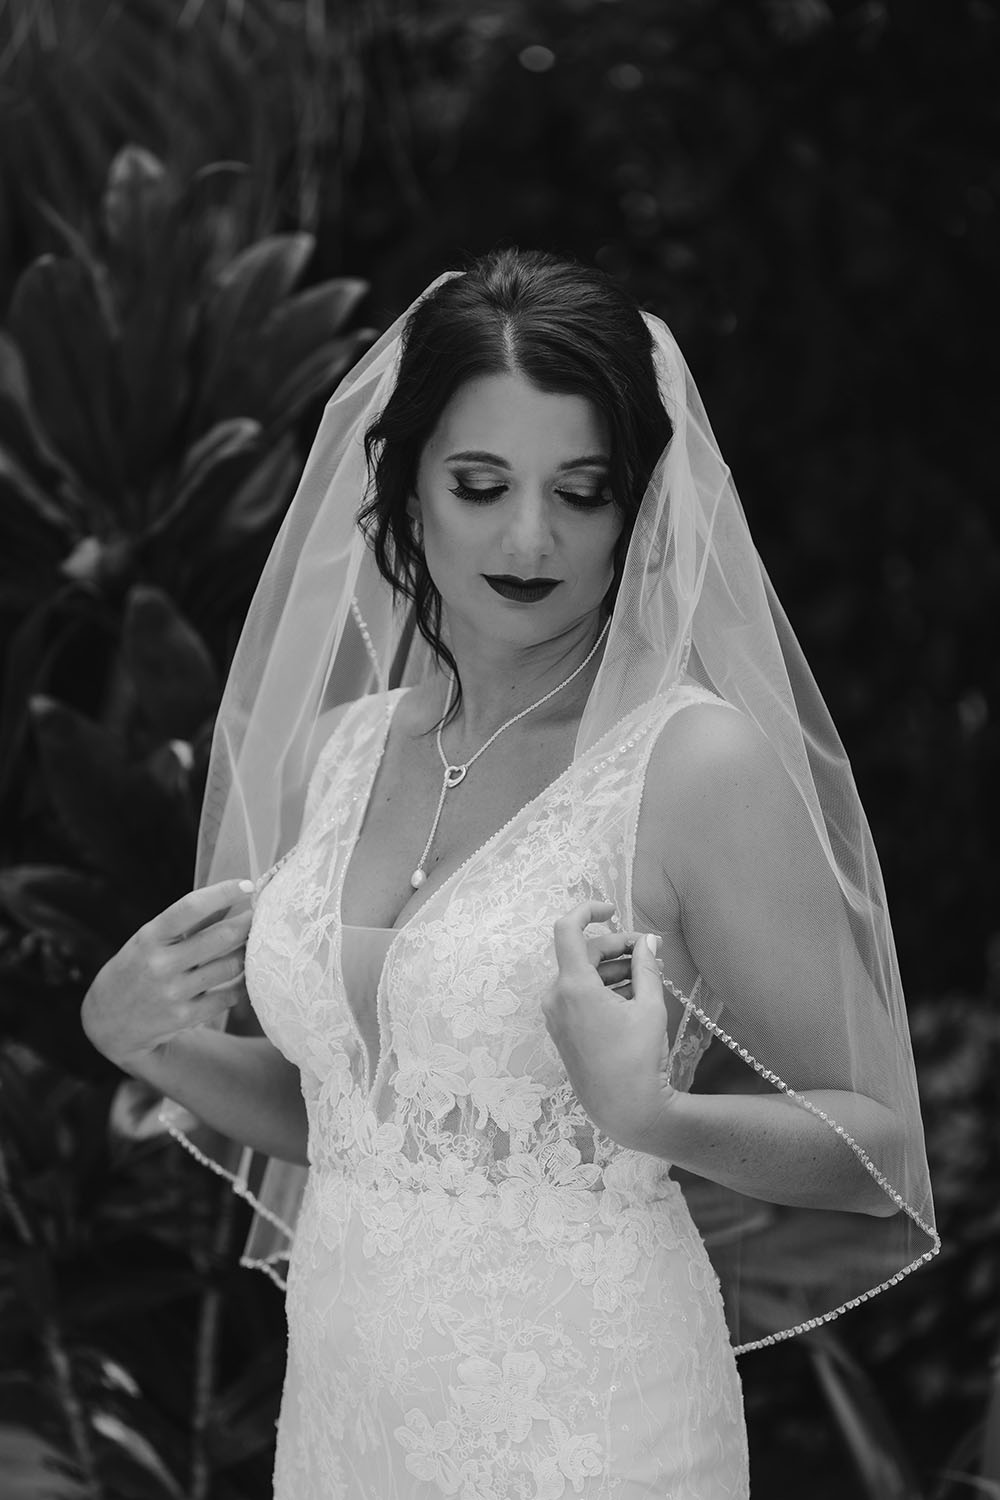 Naples Wedding Photographer, black and white image of bride